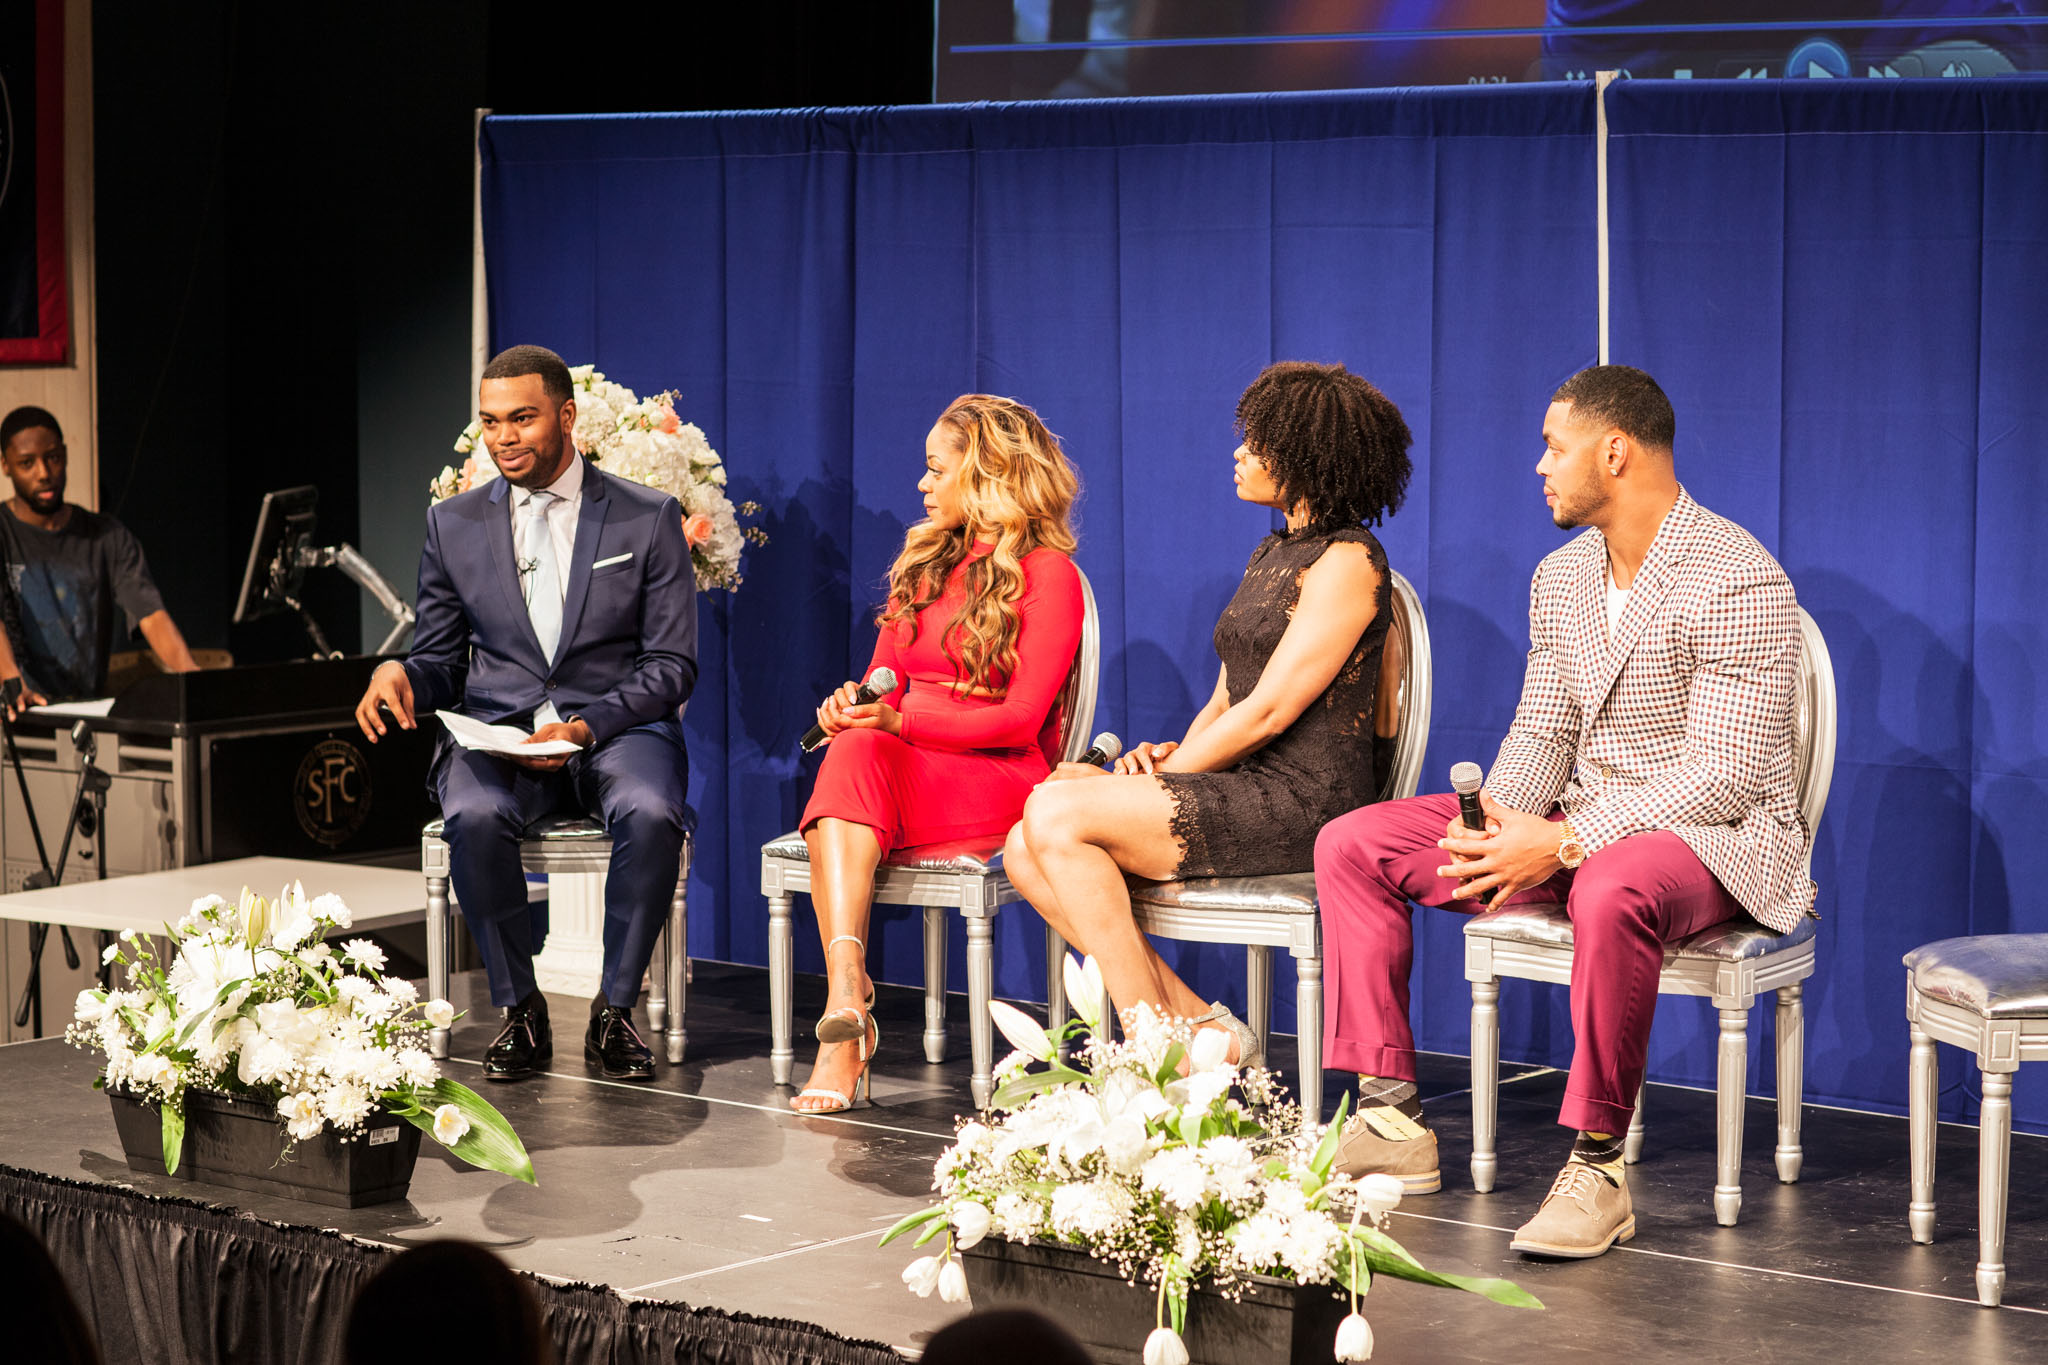 Demetria McKinney, Latavia Roberson and Johnathan Casillas attend The Phill Taitt Show - Dream Reach Inspire